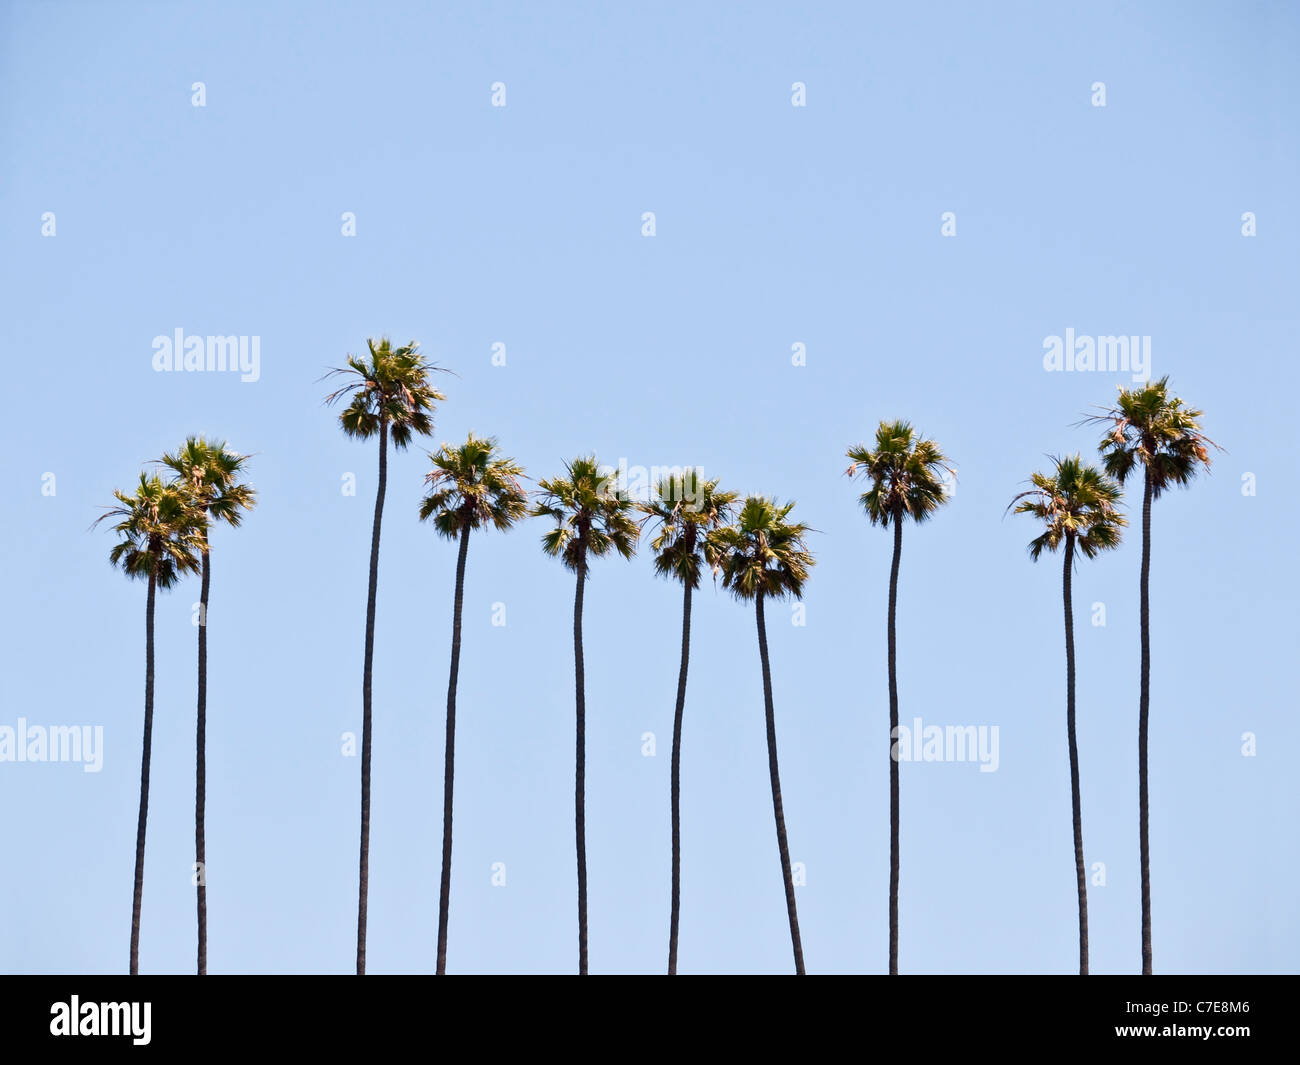 A group of towering mature palm trees in sunny southern California.